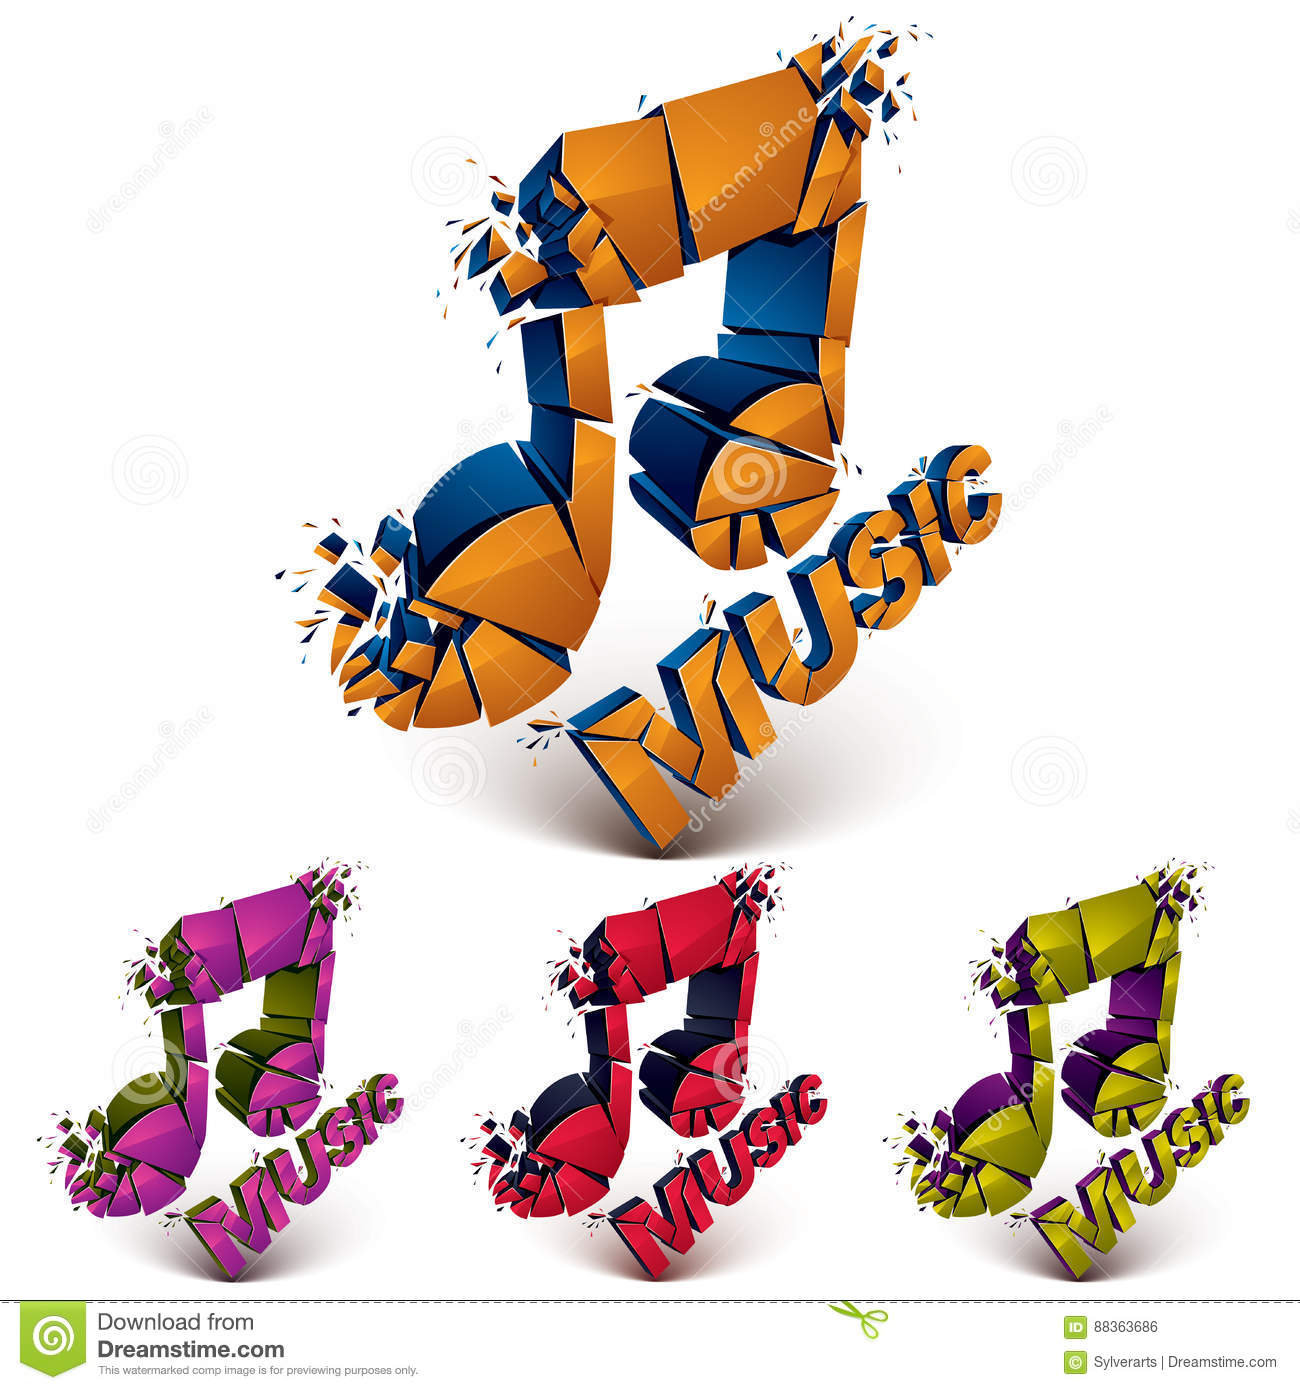 Set Of 3d Vector Shattered Musical Notes With Music Word Art Me